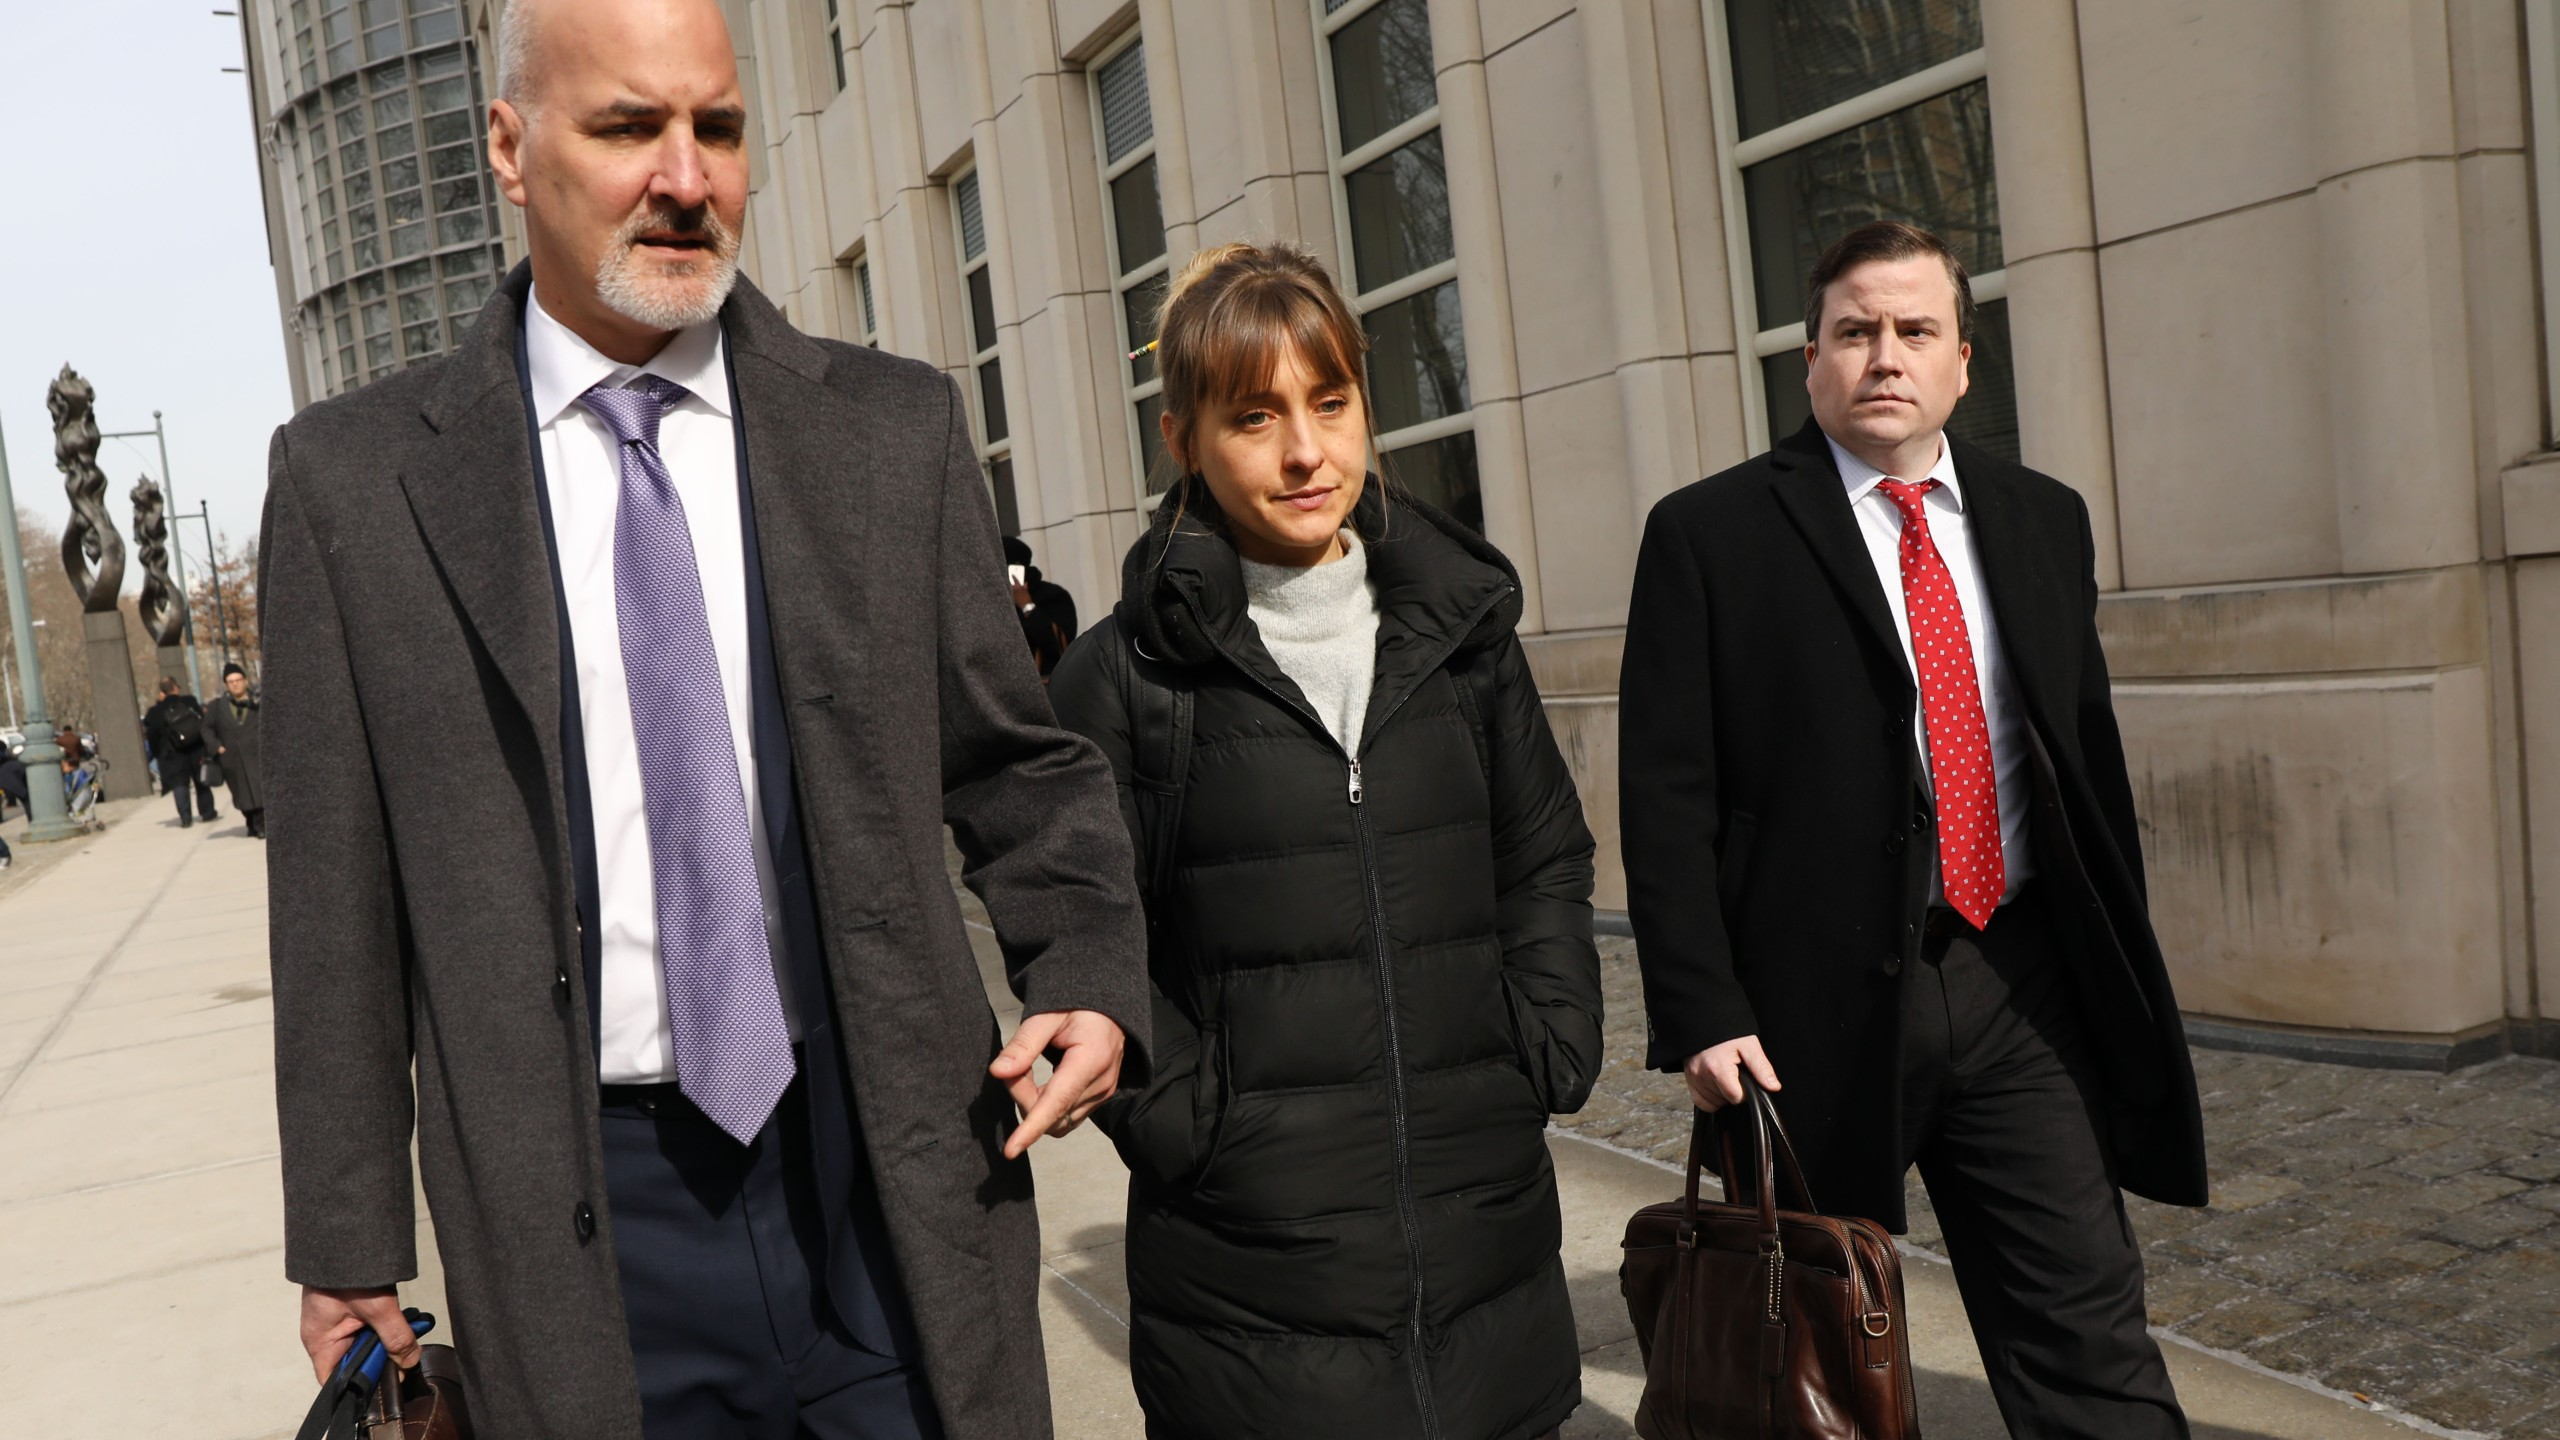 Actress Allison Mack leaves the Brooklyn Federal Courthouse with her lawyers after a court appearance surrounding the alleged sex cult NXIVM on Feb. 6, 2019. (Credit: Spencer Platt / Getty Images)